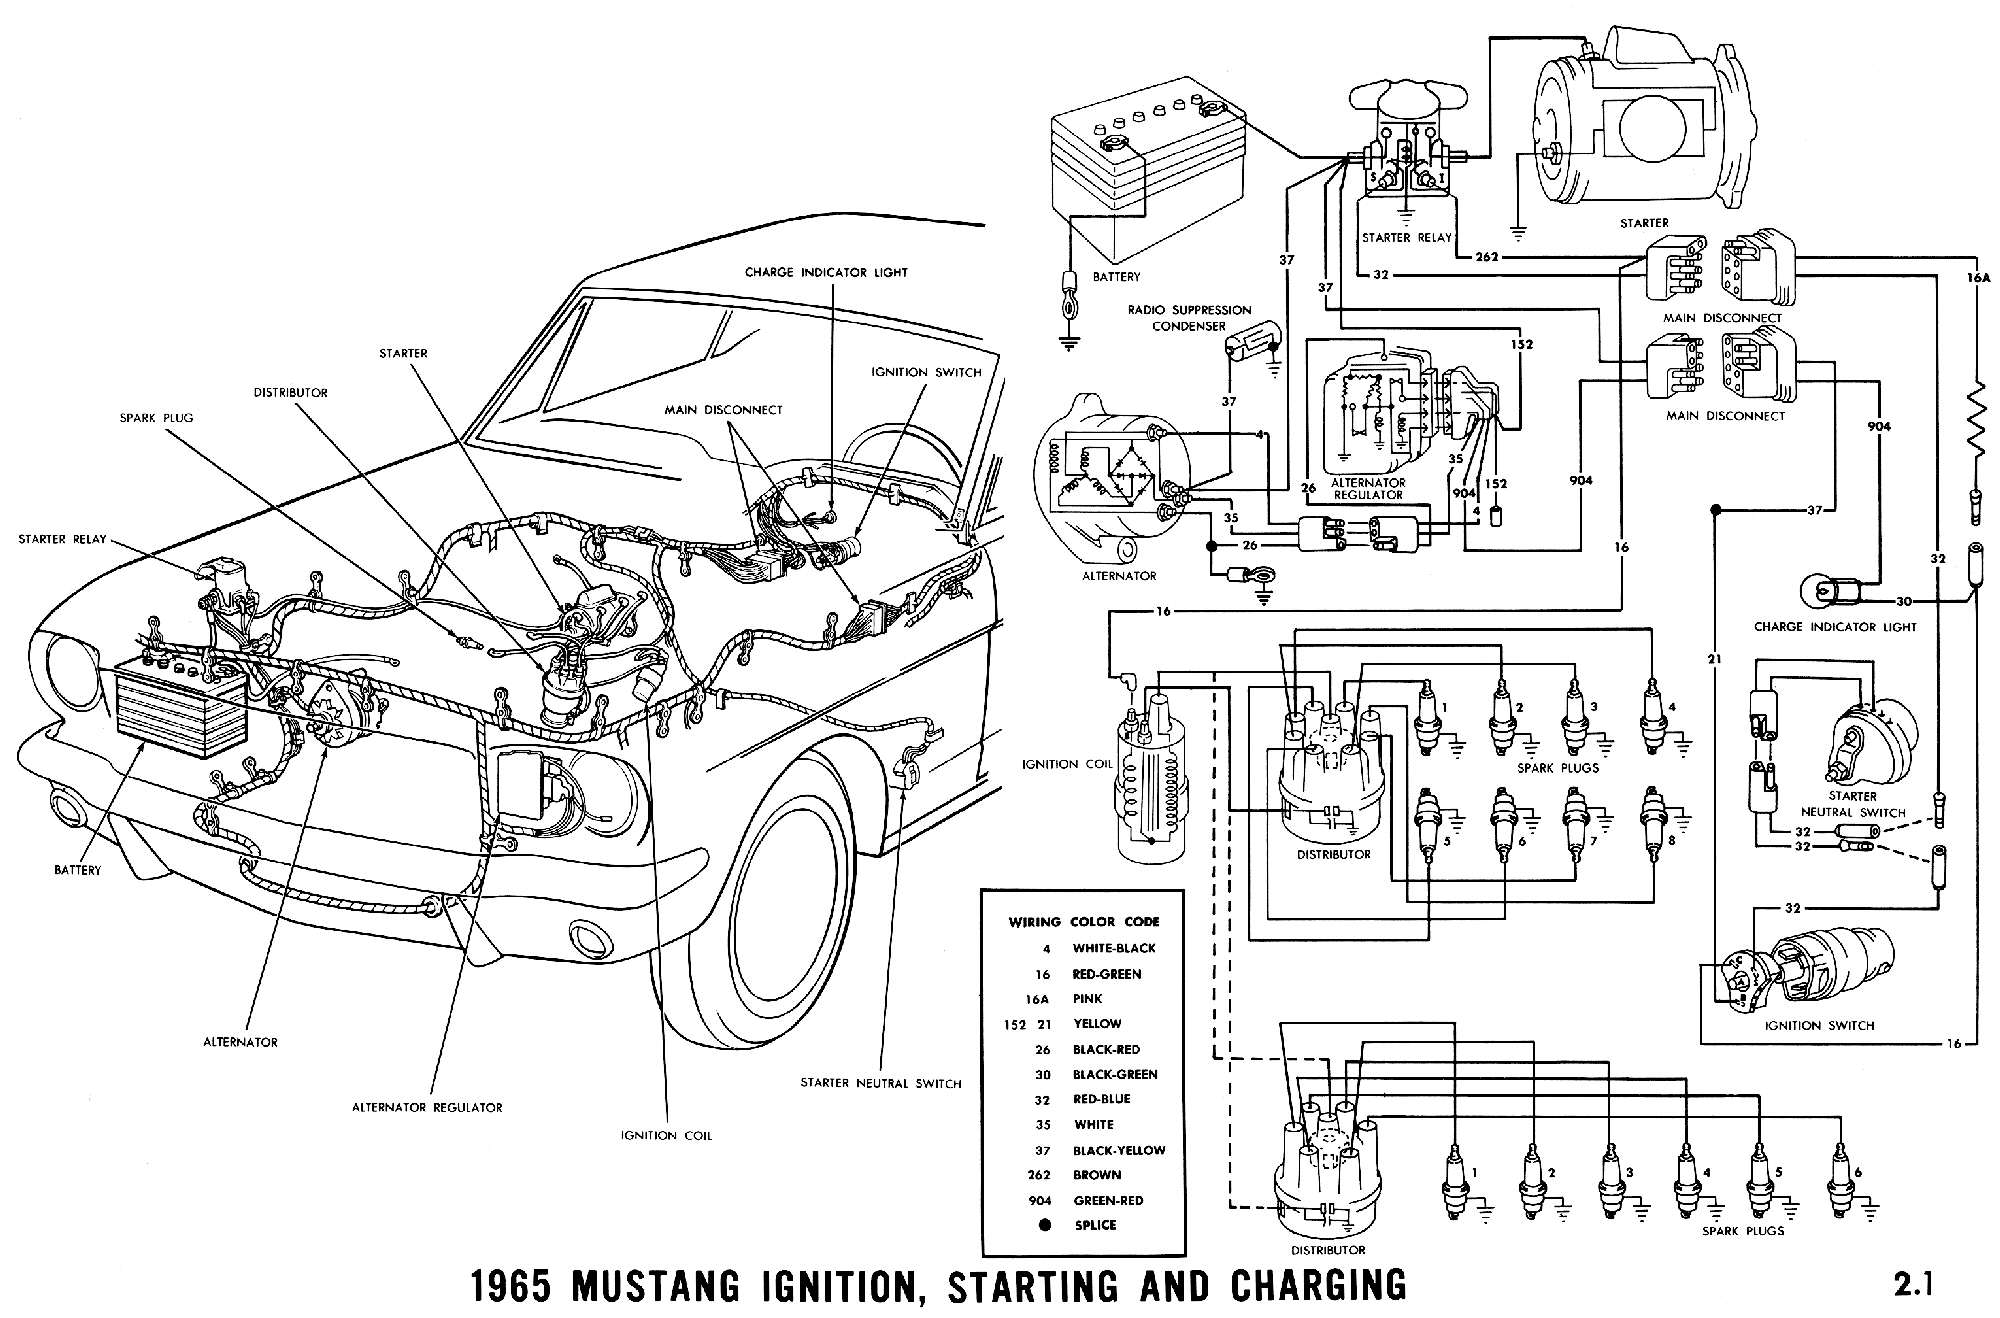 1965c 1965 mustang wiring diagrams average joe restoration 1966 mustang headlight wiring diagram at readyjetset.co